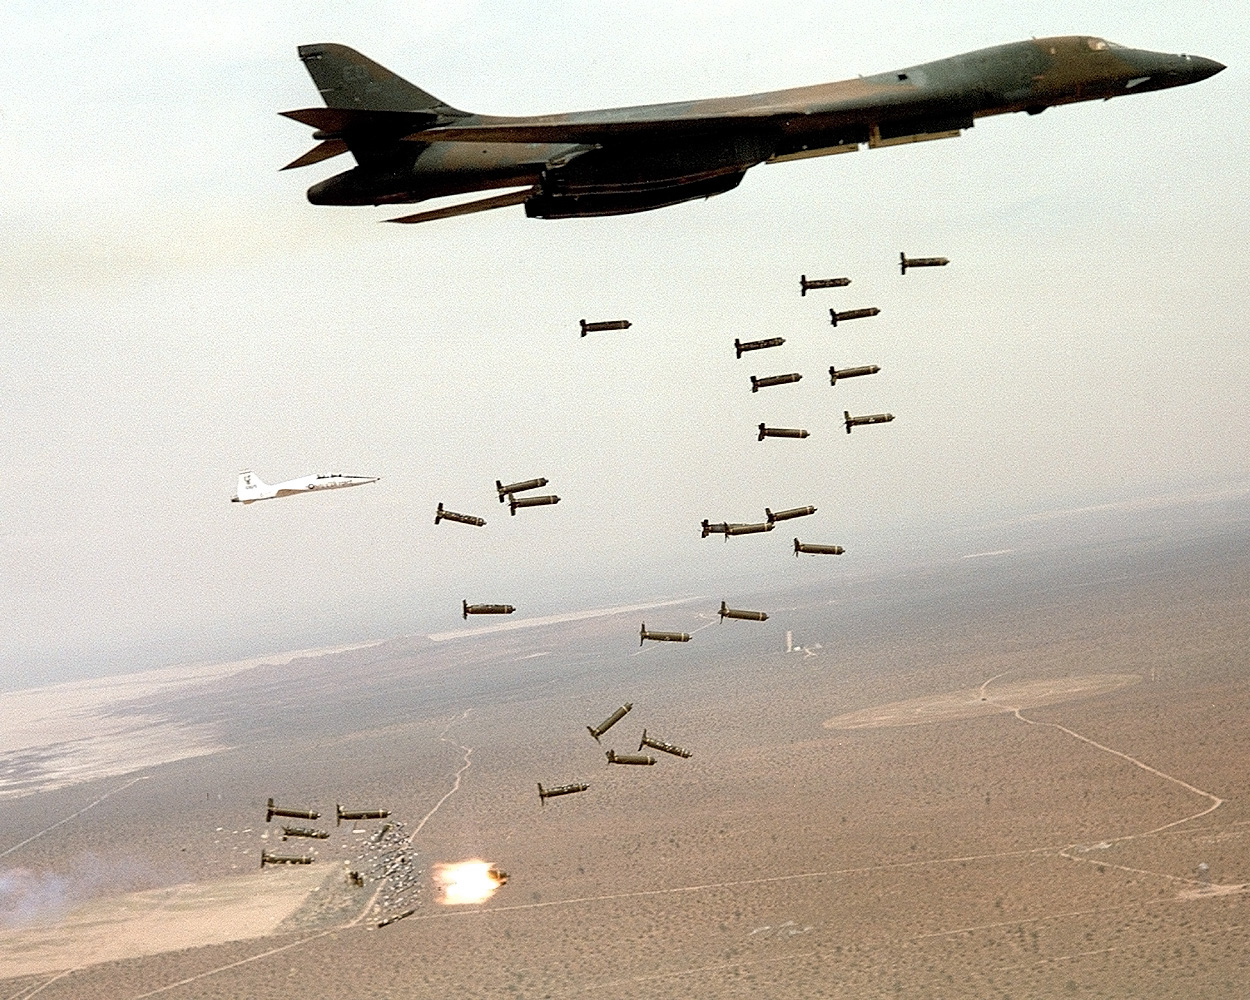 http://upload.wikimedia.org/wikipedia/commons/0/0a/B1-B_Lancer_and_cluster_bombs.jpg